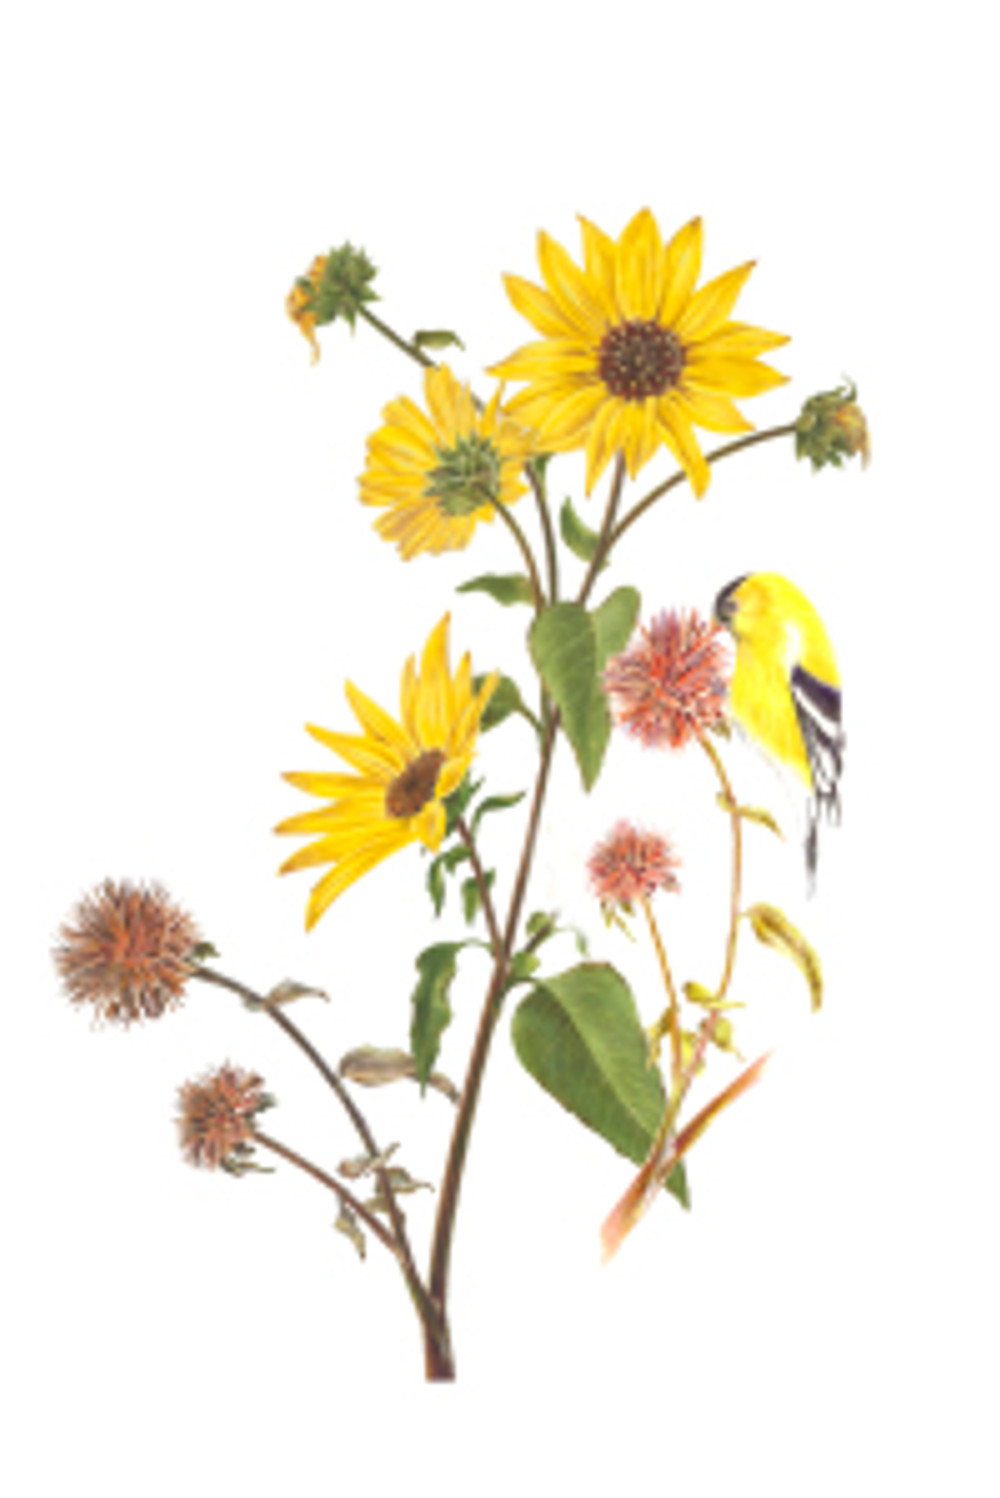 Estelle DeRidder, Helianthus annuus (annual sunflower) with Spinus tristis (American goldfinch), © 2015, all rights reserved.